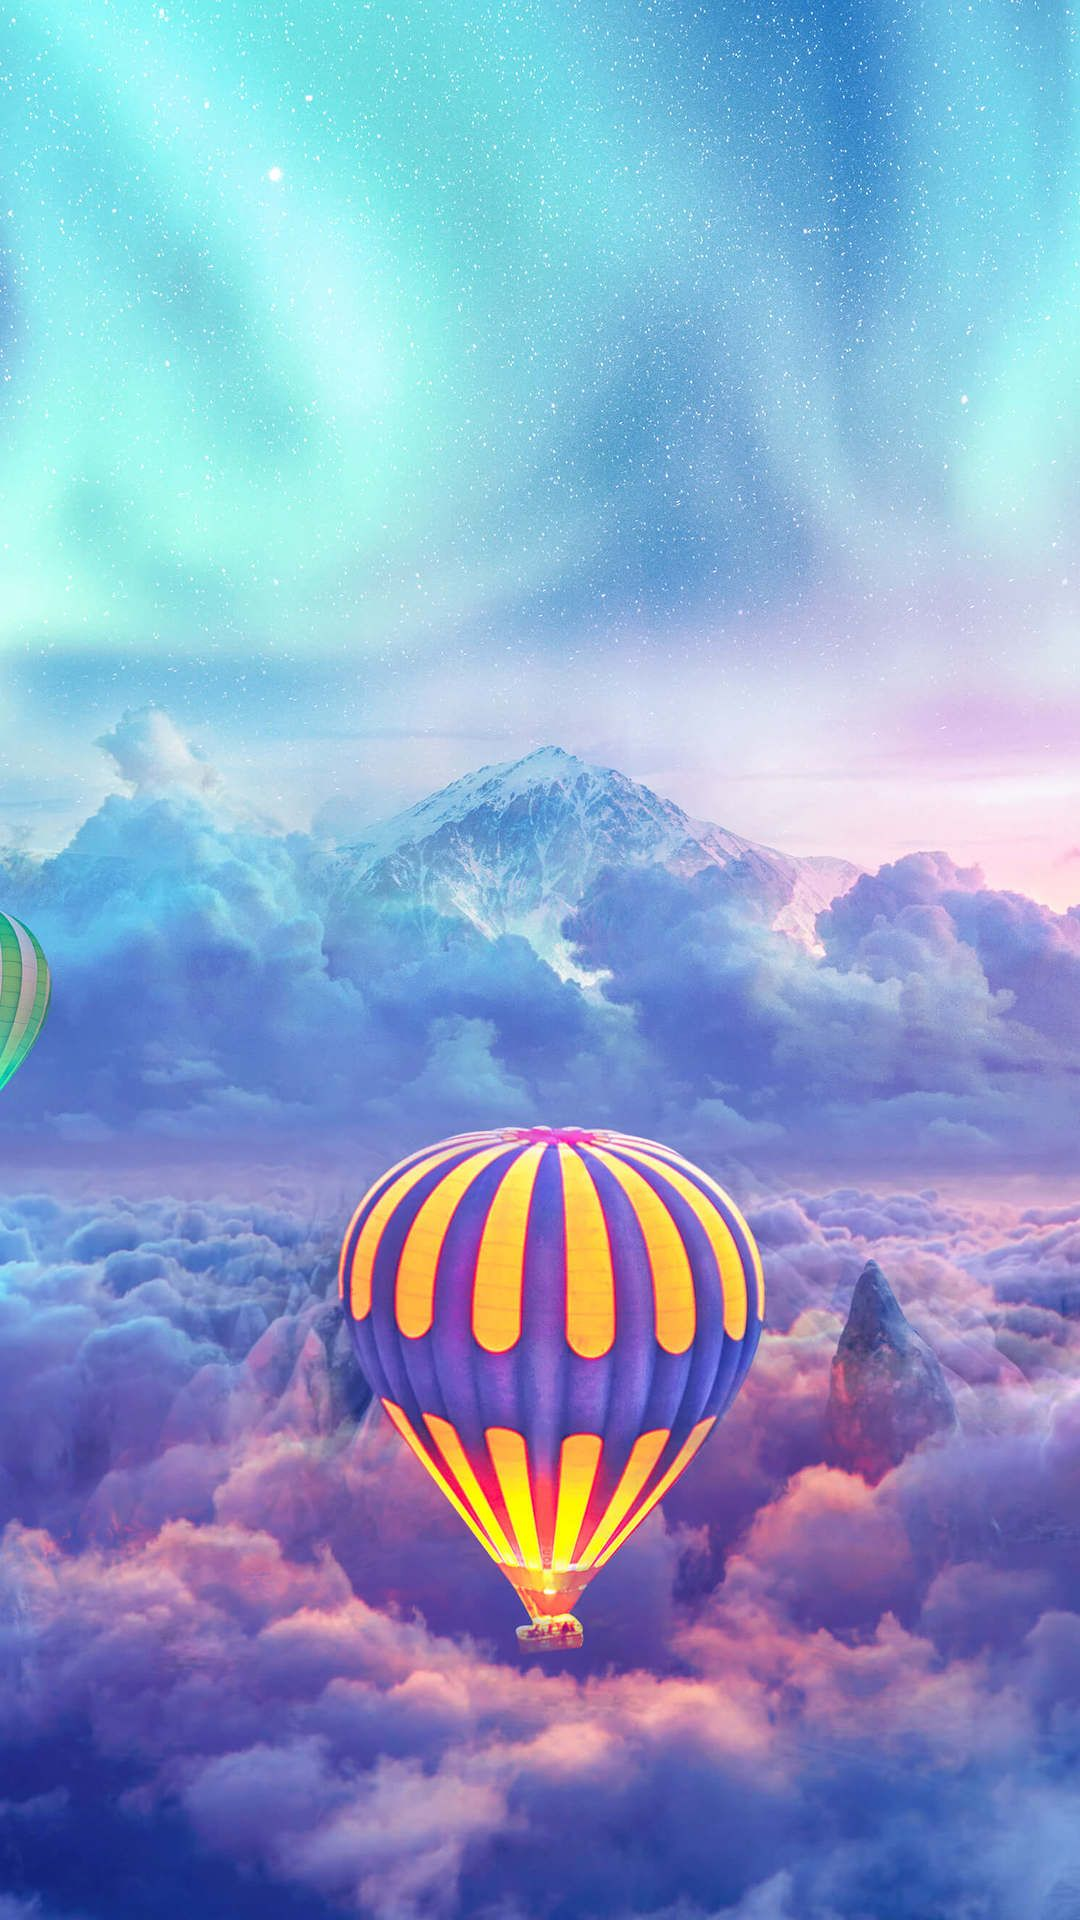 Hot Air Balloons Creative Photography In 1080x1920 Resolution Balloons Photography Iphone Wallpaper Sky Balloon Illustration